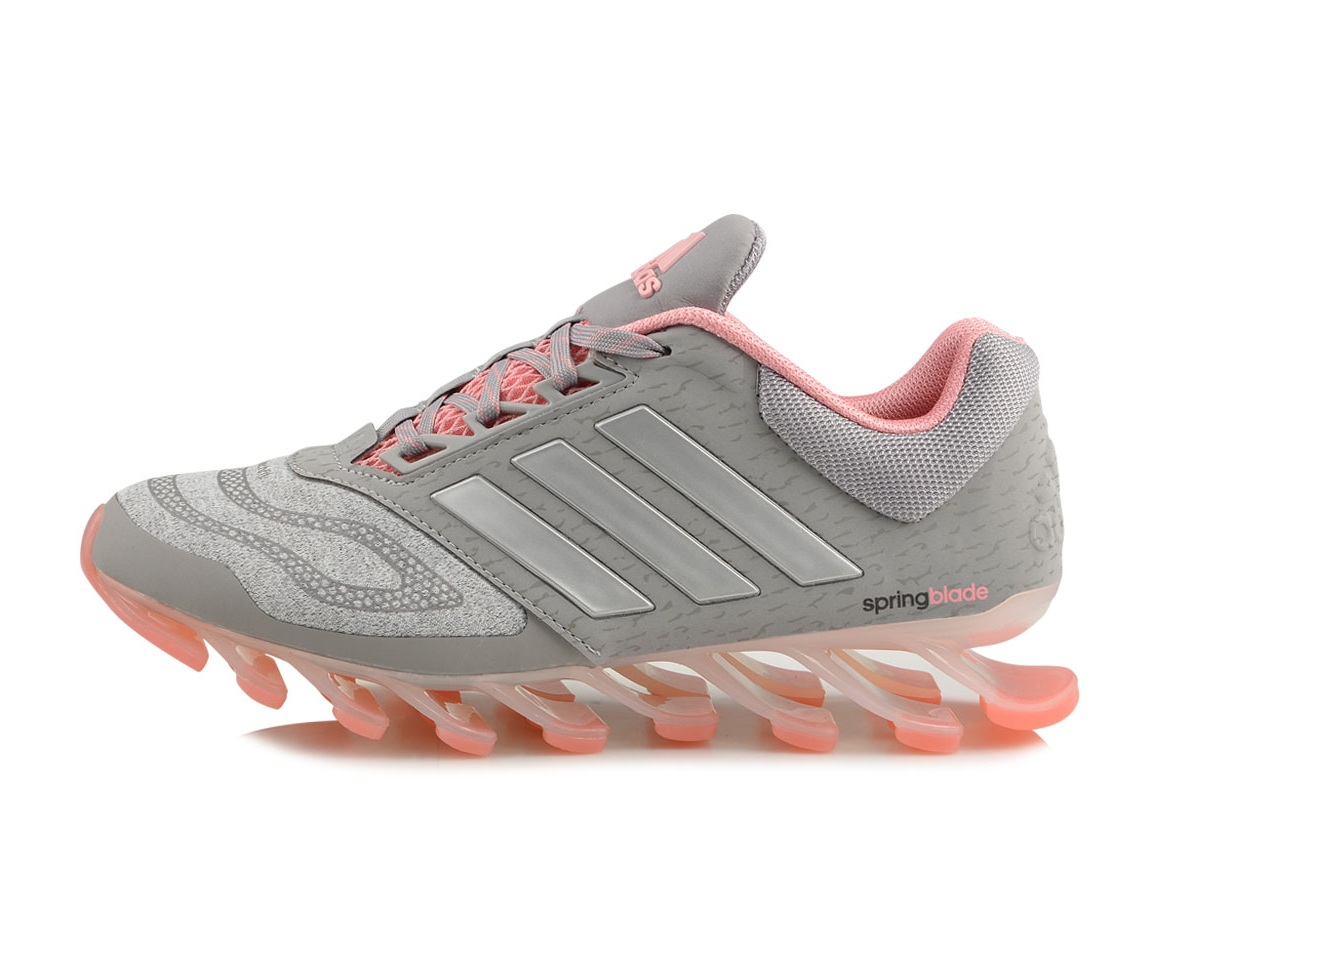 super popular 909be d6243 adidas springblade drive 2.0 grey